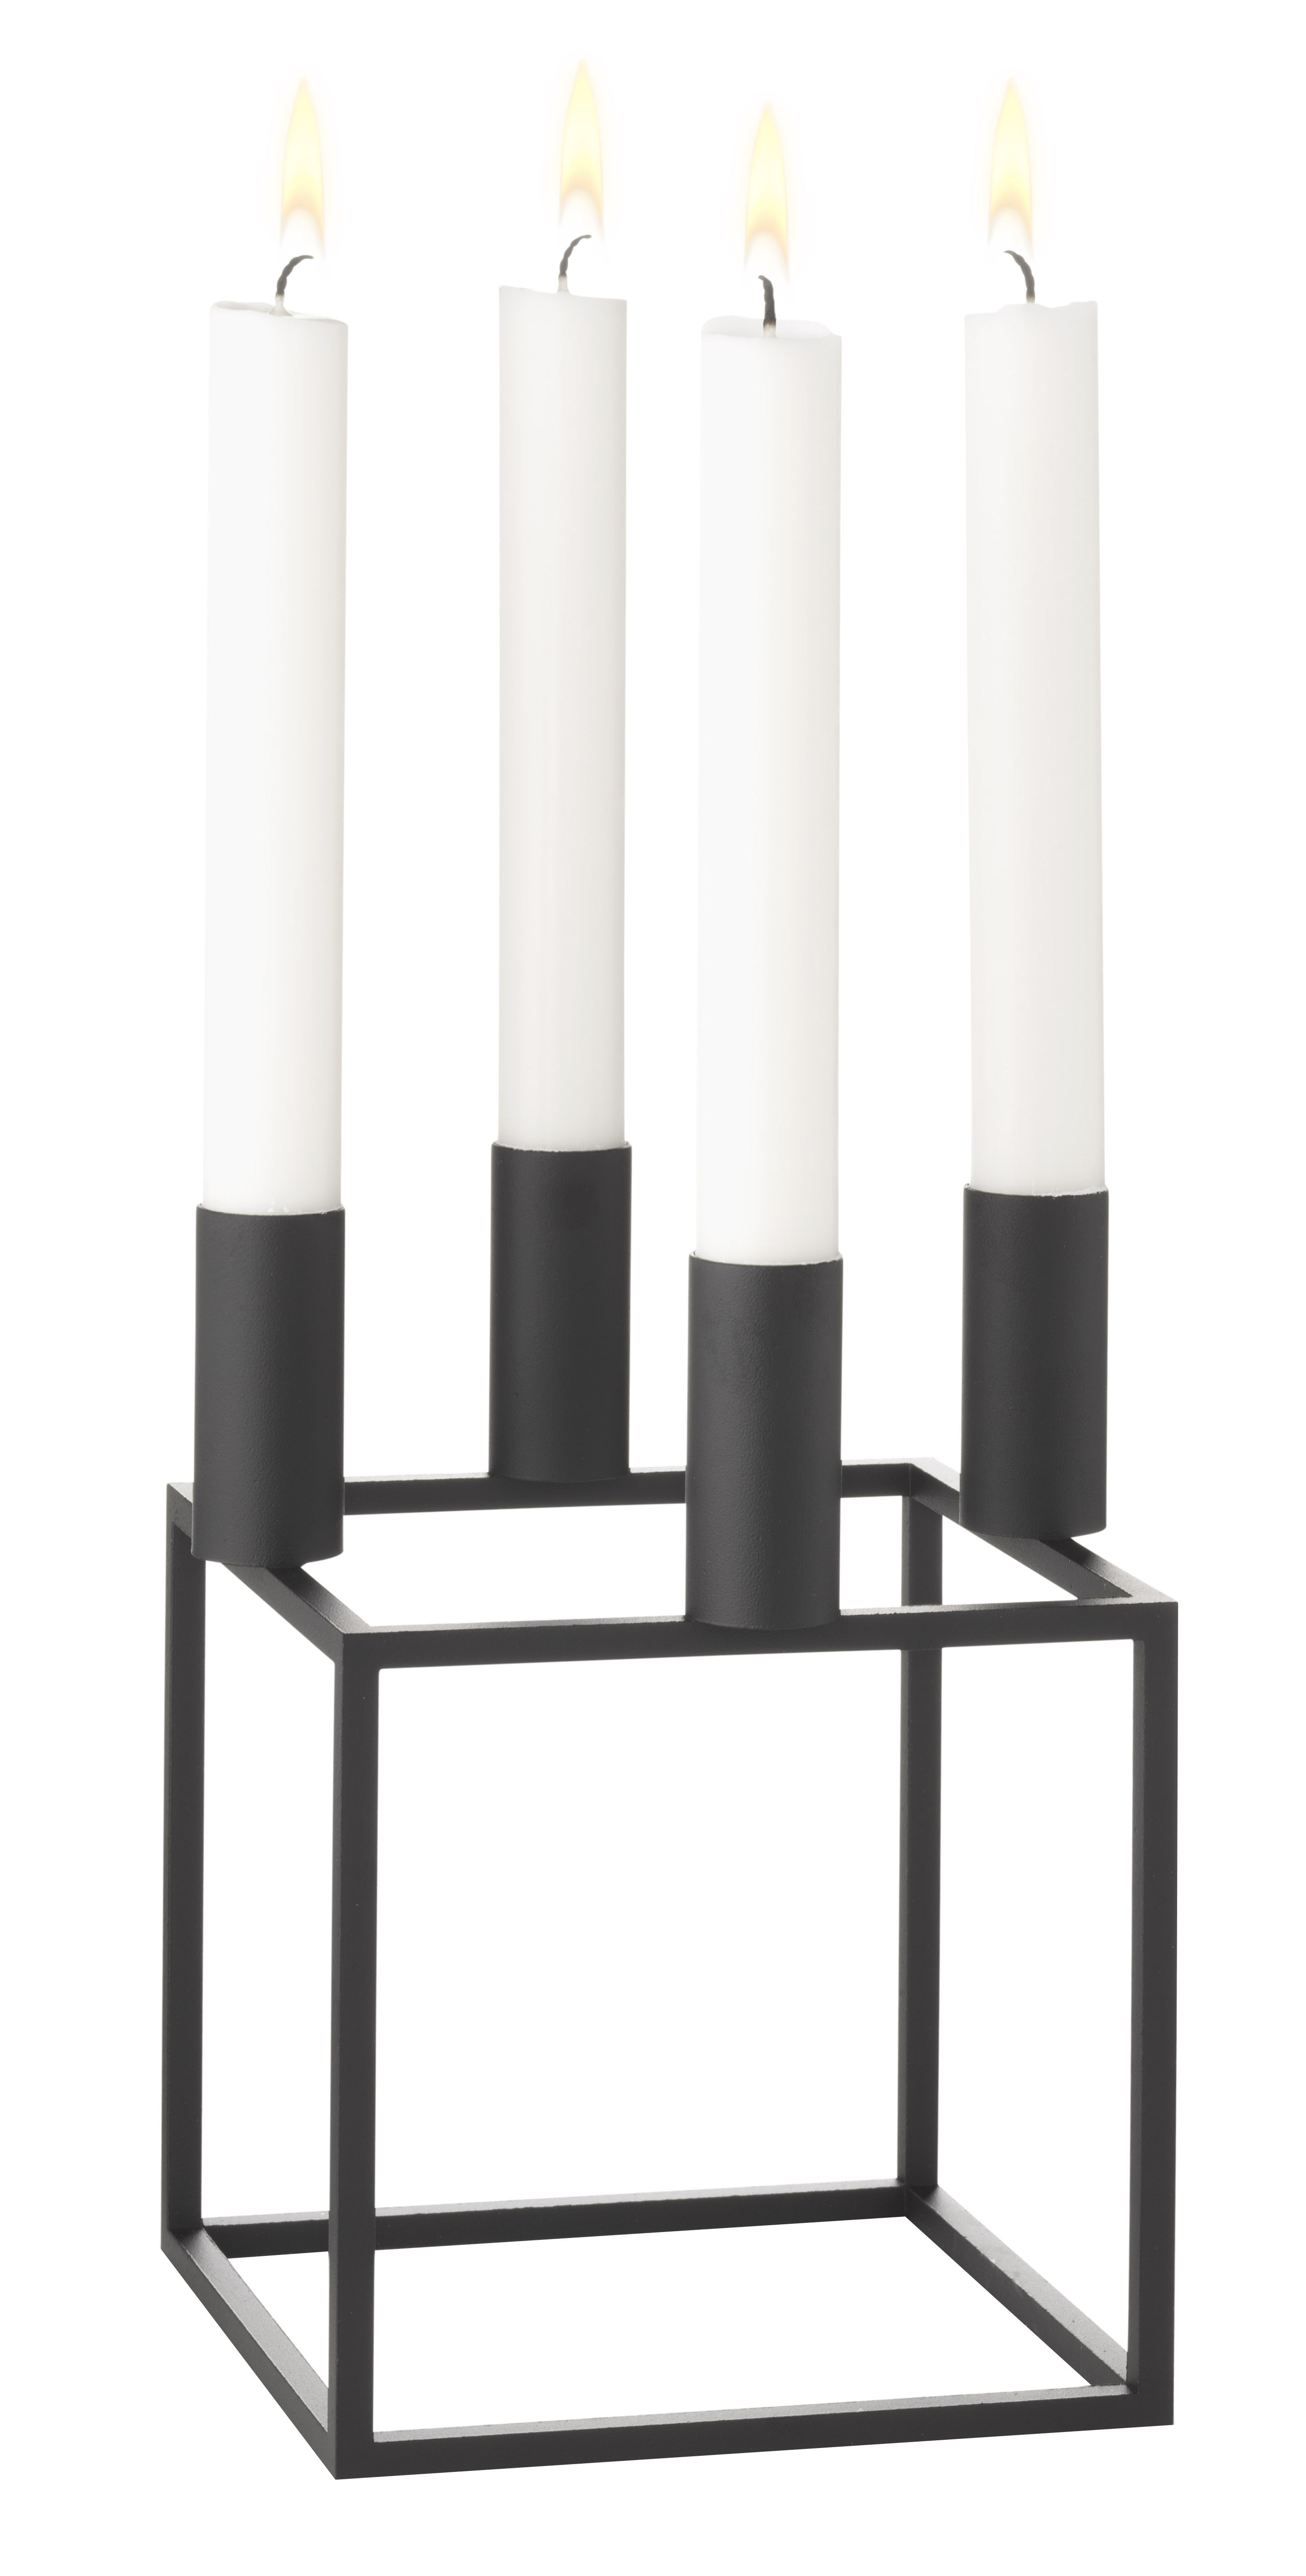 Decoration - Candles & Candle Holders - Kubus 4 Candelabra - Reissue 1962 by by Lassen - Black - Lacquered steel